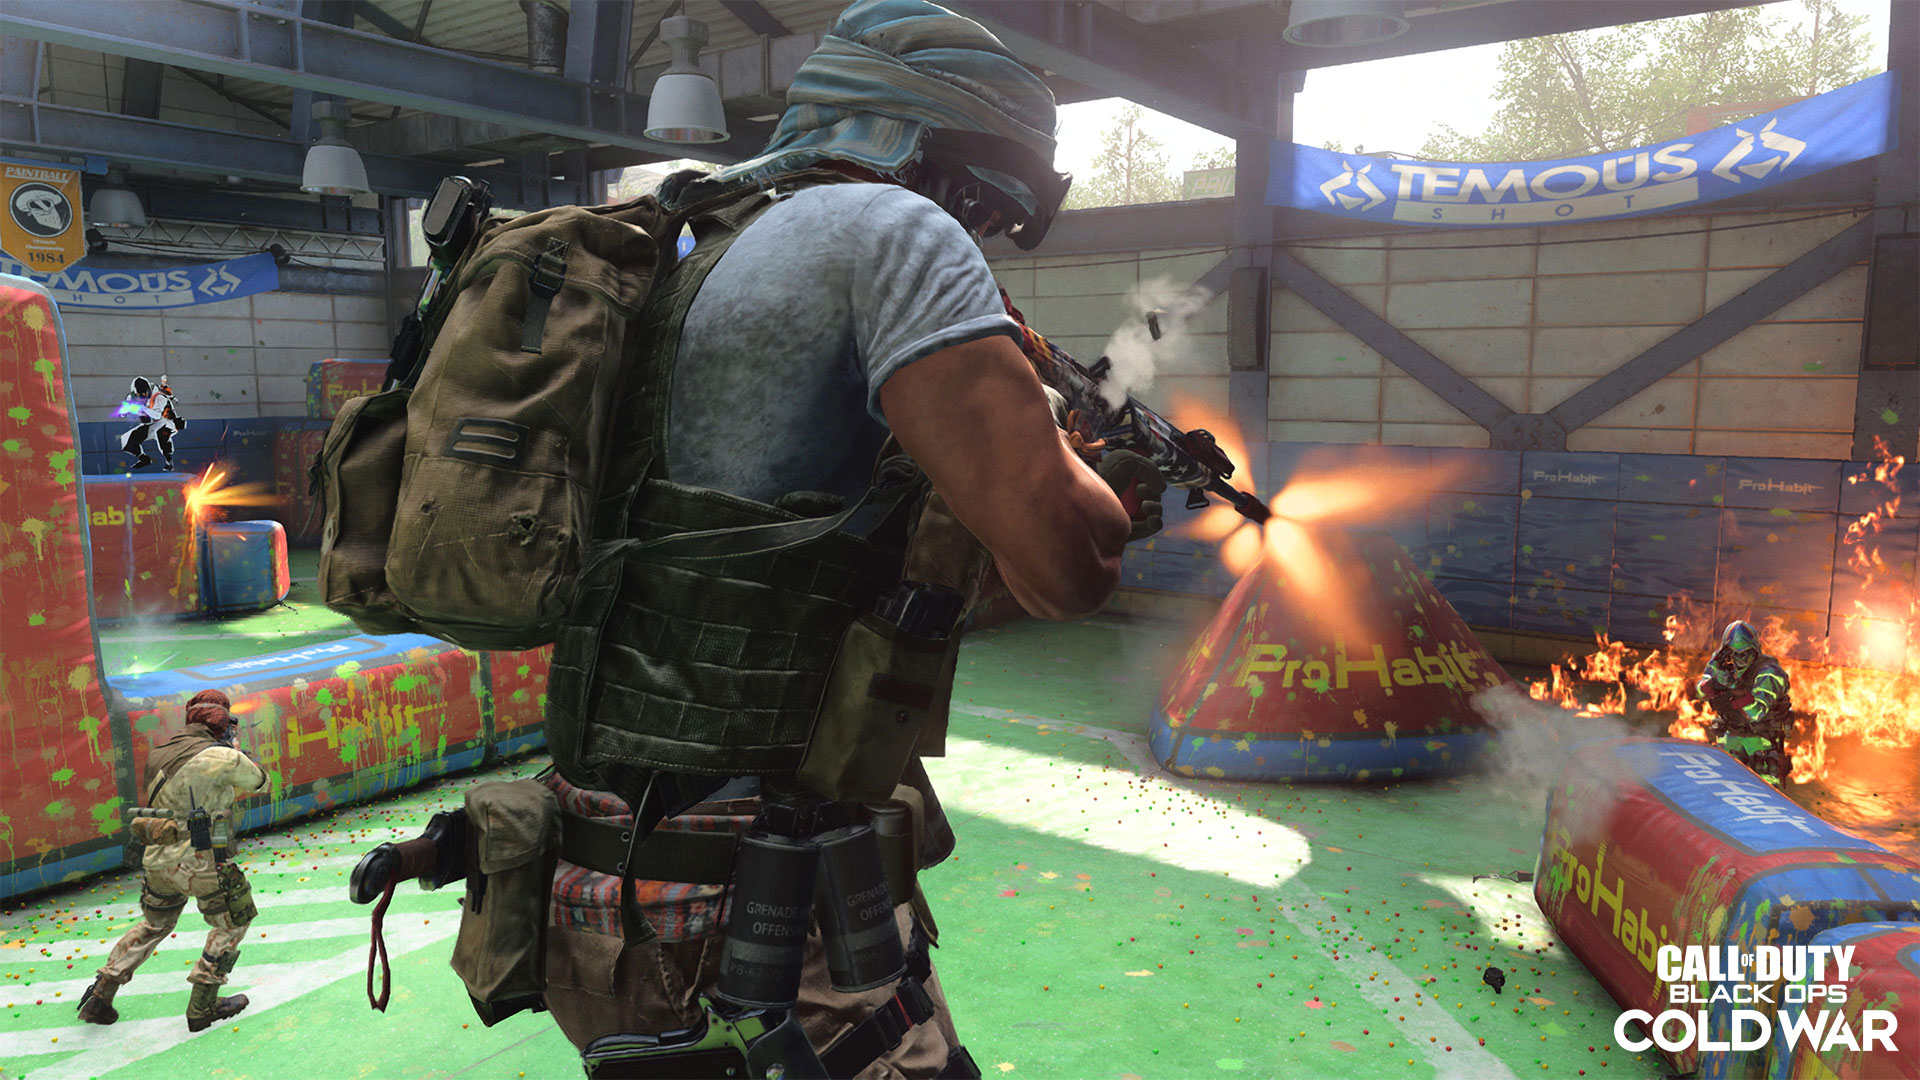 Another firefight in the paintball arena